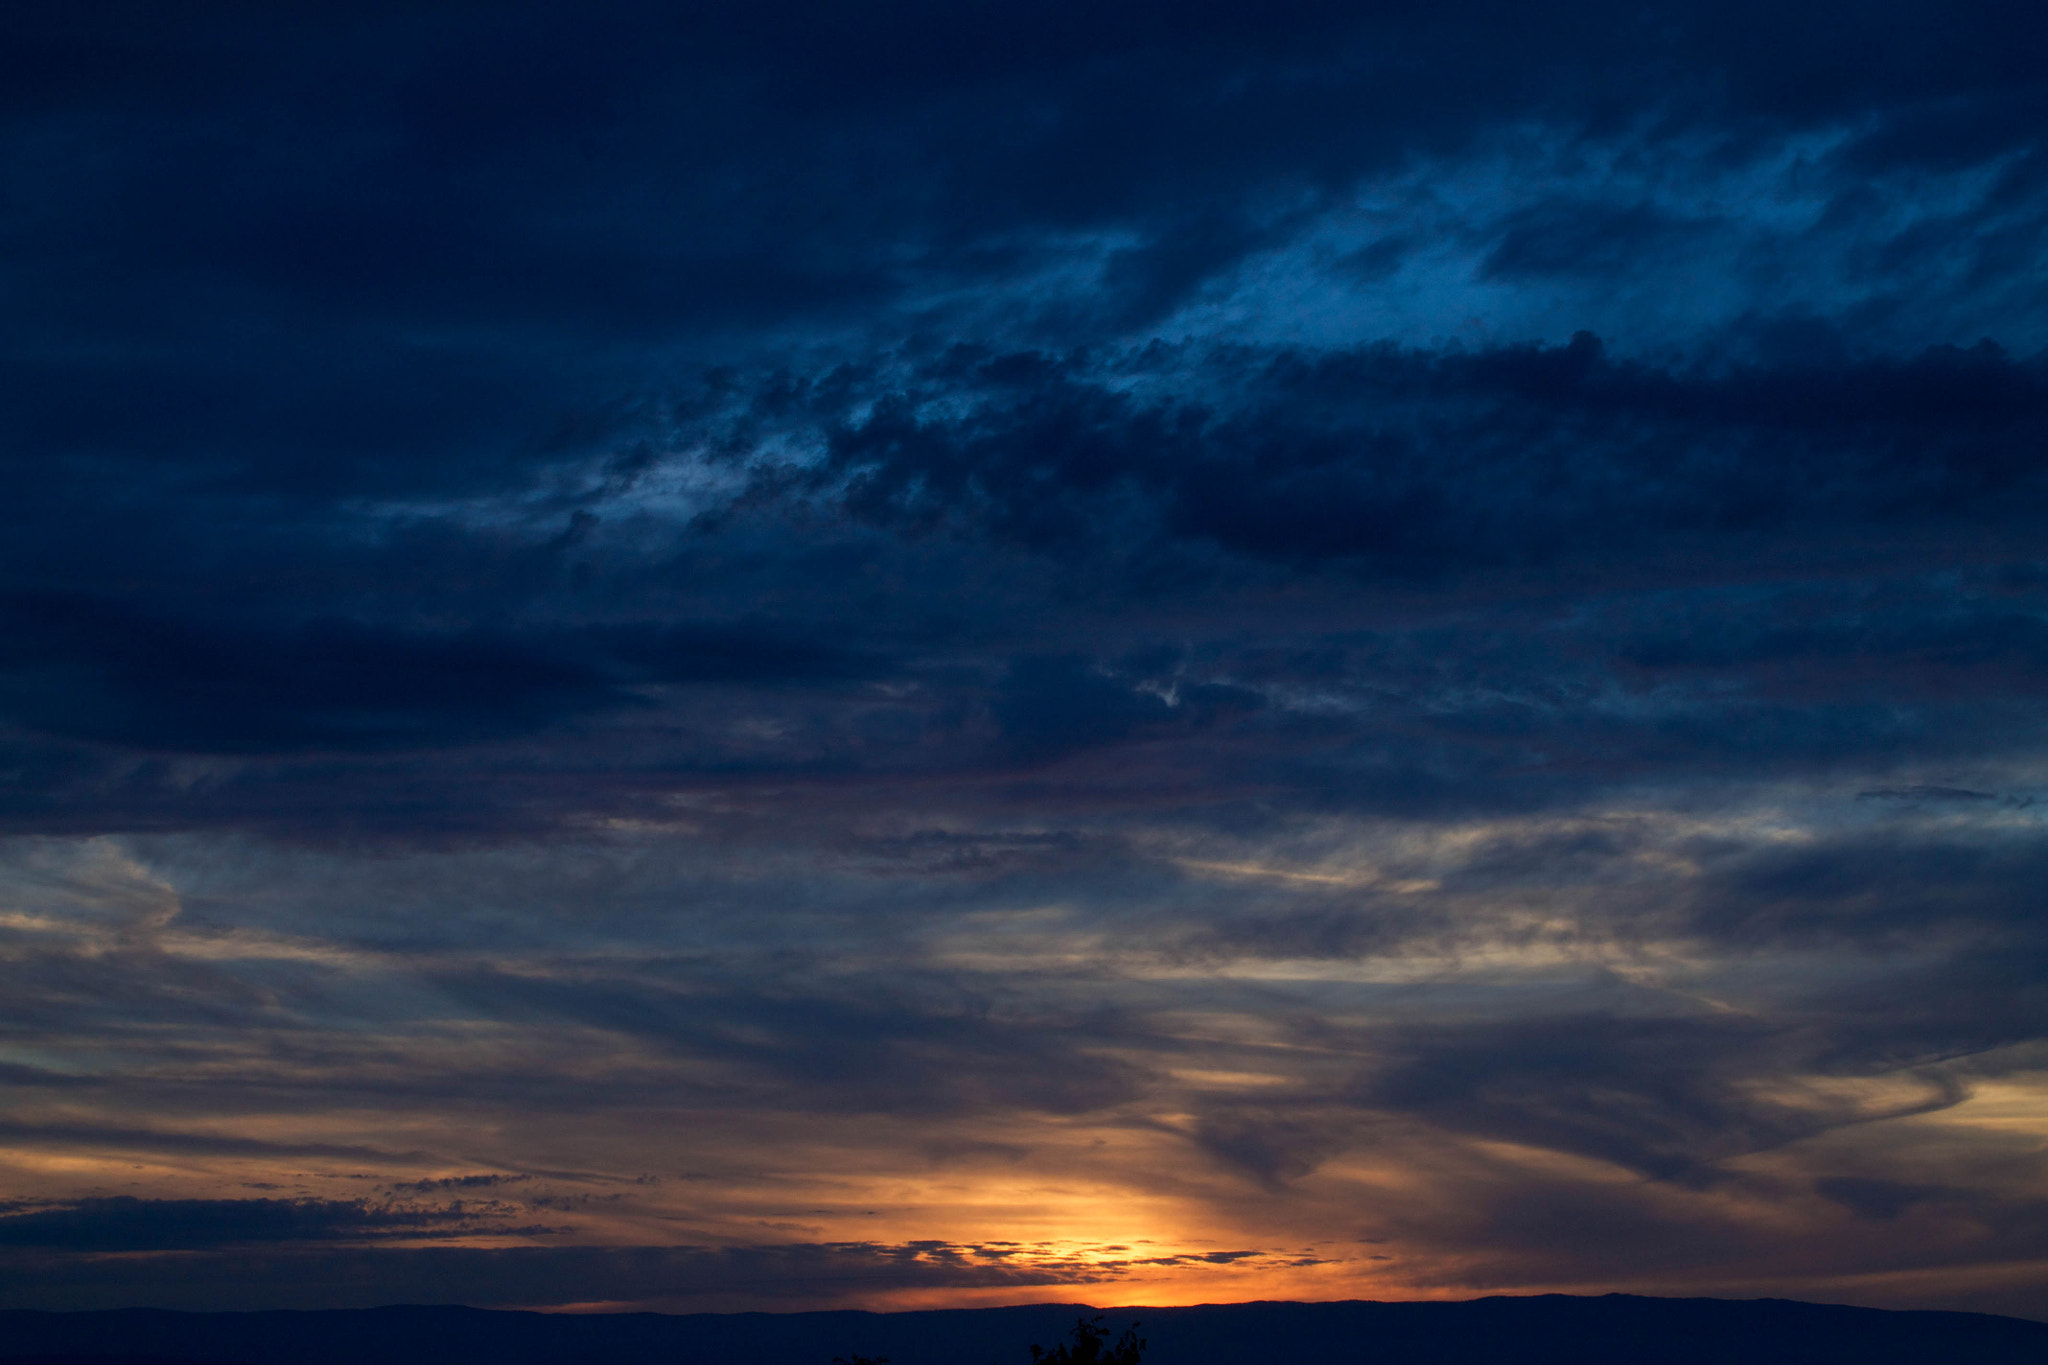 Photograph Sunset through the clouds  by Aerni Adeline on 500px